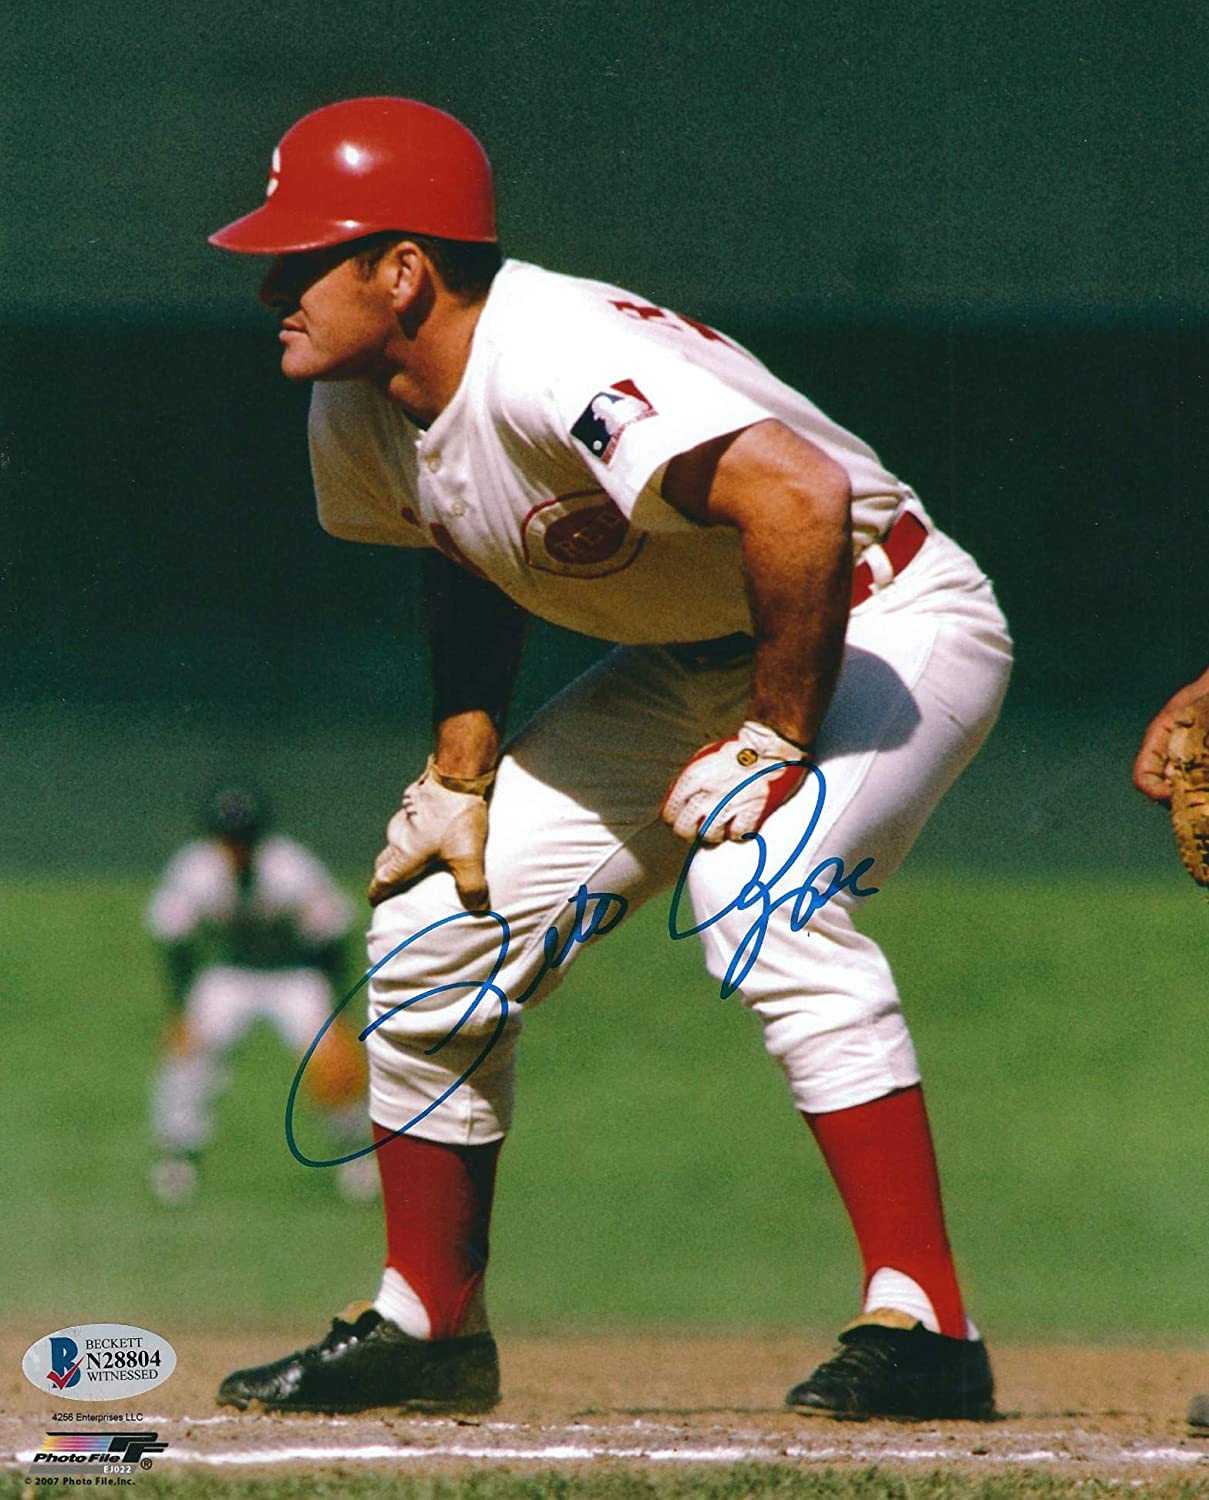 Autographed Pete Rose Special Limited time trial price price 8x10 Reds Beckett Photo Cincinnati